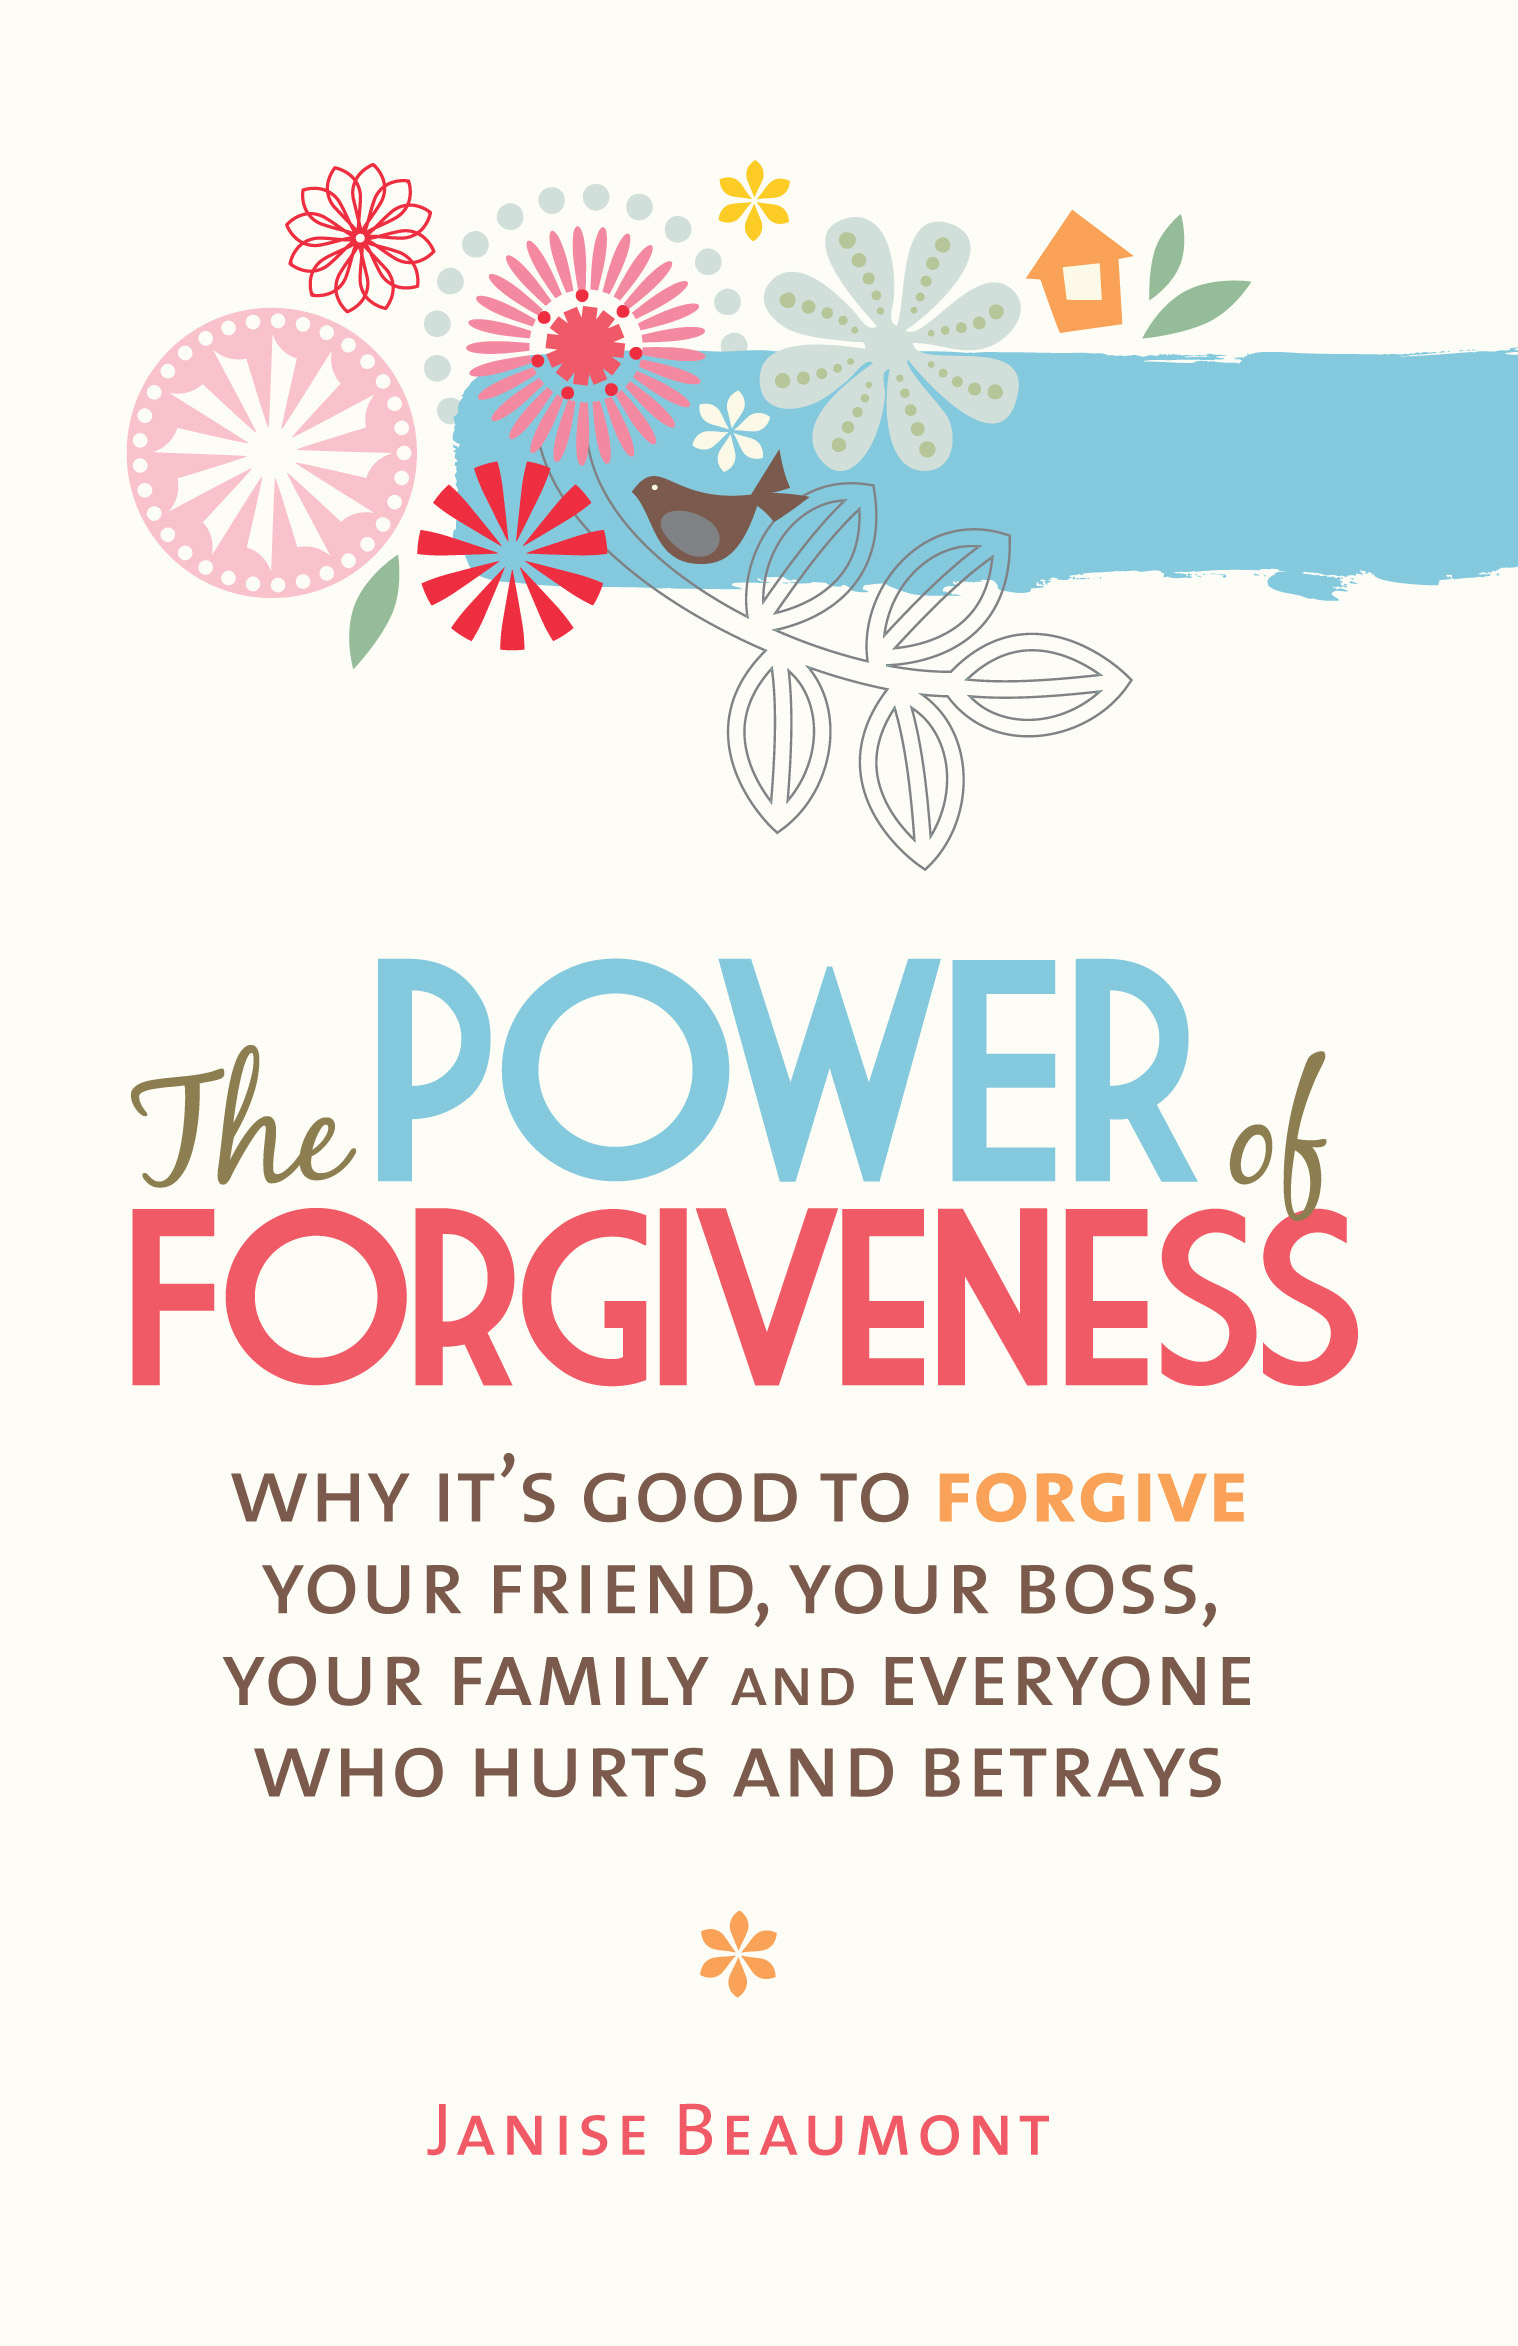 power of forgiveness We do not have to be victims of our own storiesbut interestingly enough stories are a way out [our suffering] we hold the power to change our story.